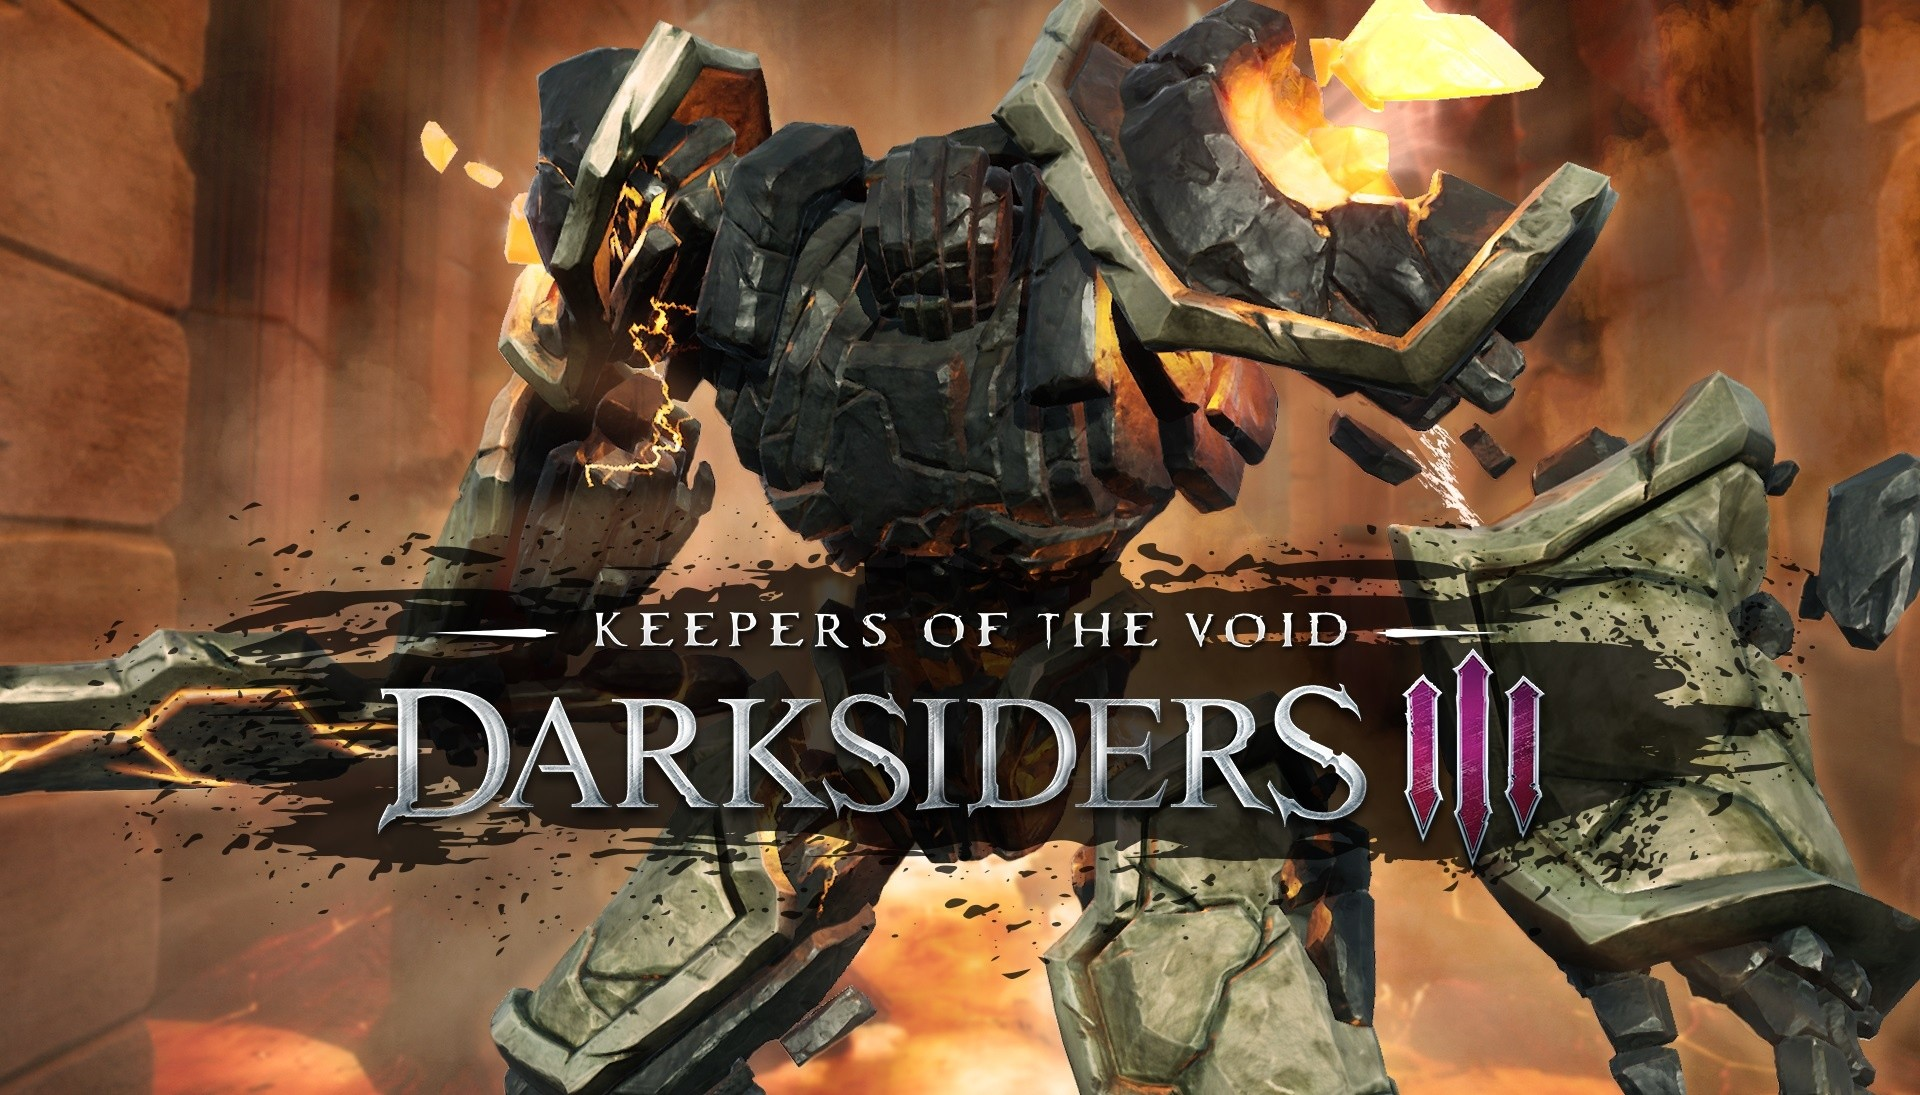 Darksiders 3: Keepers of the Void